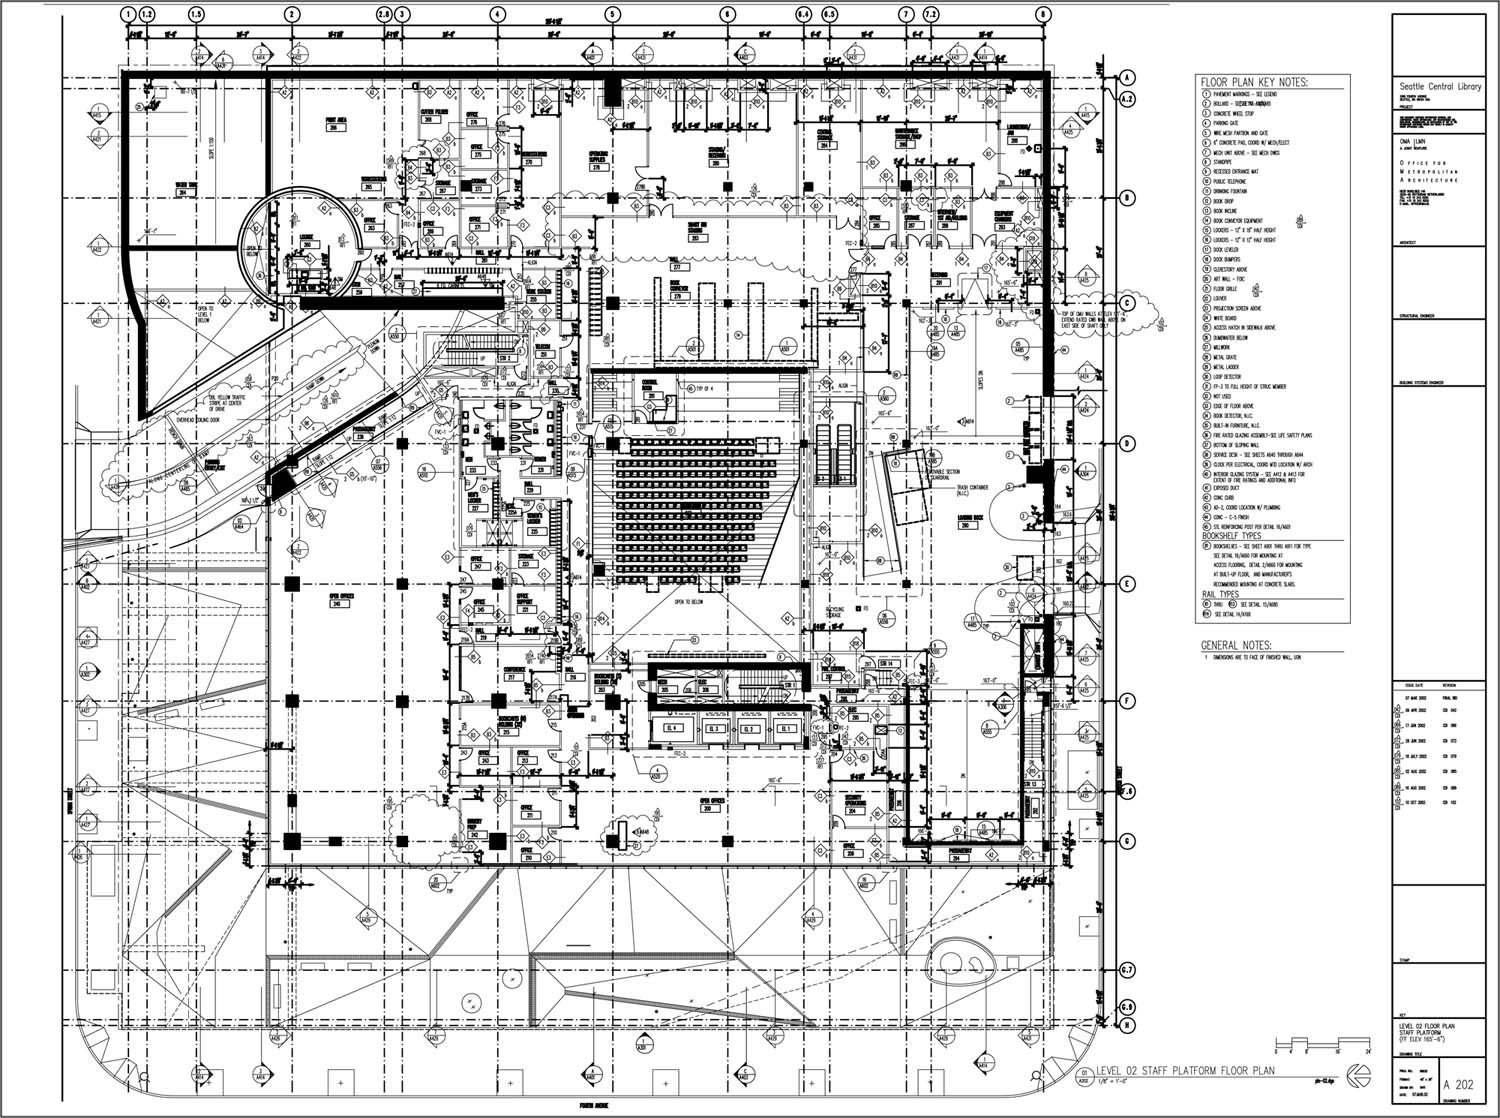 Plans/Sections